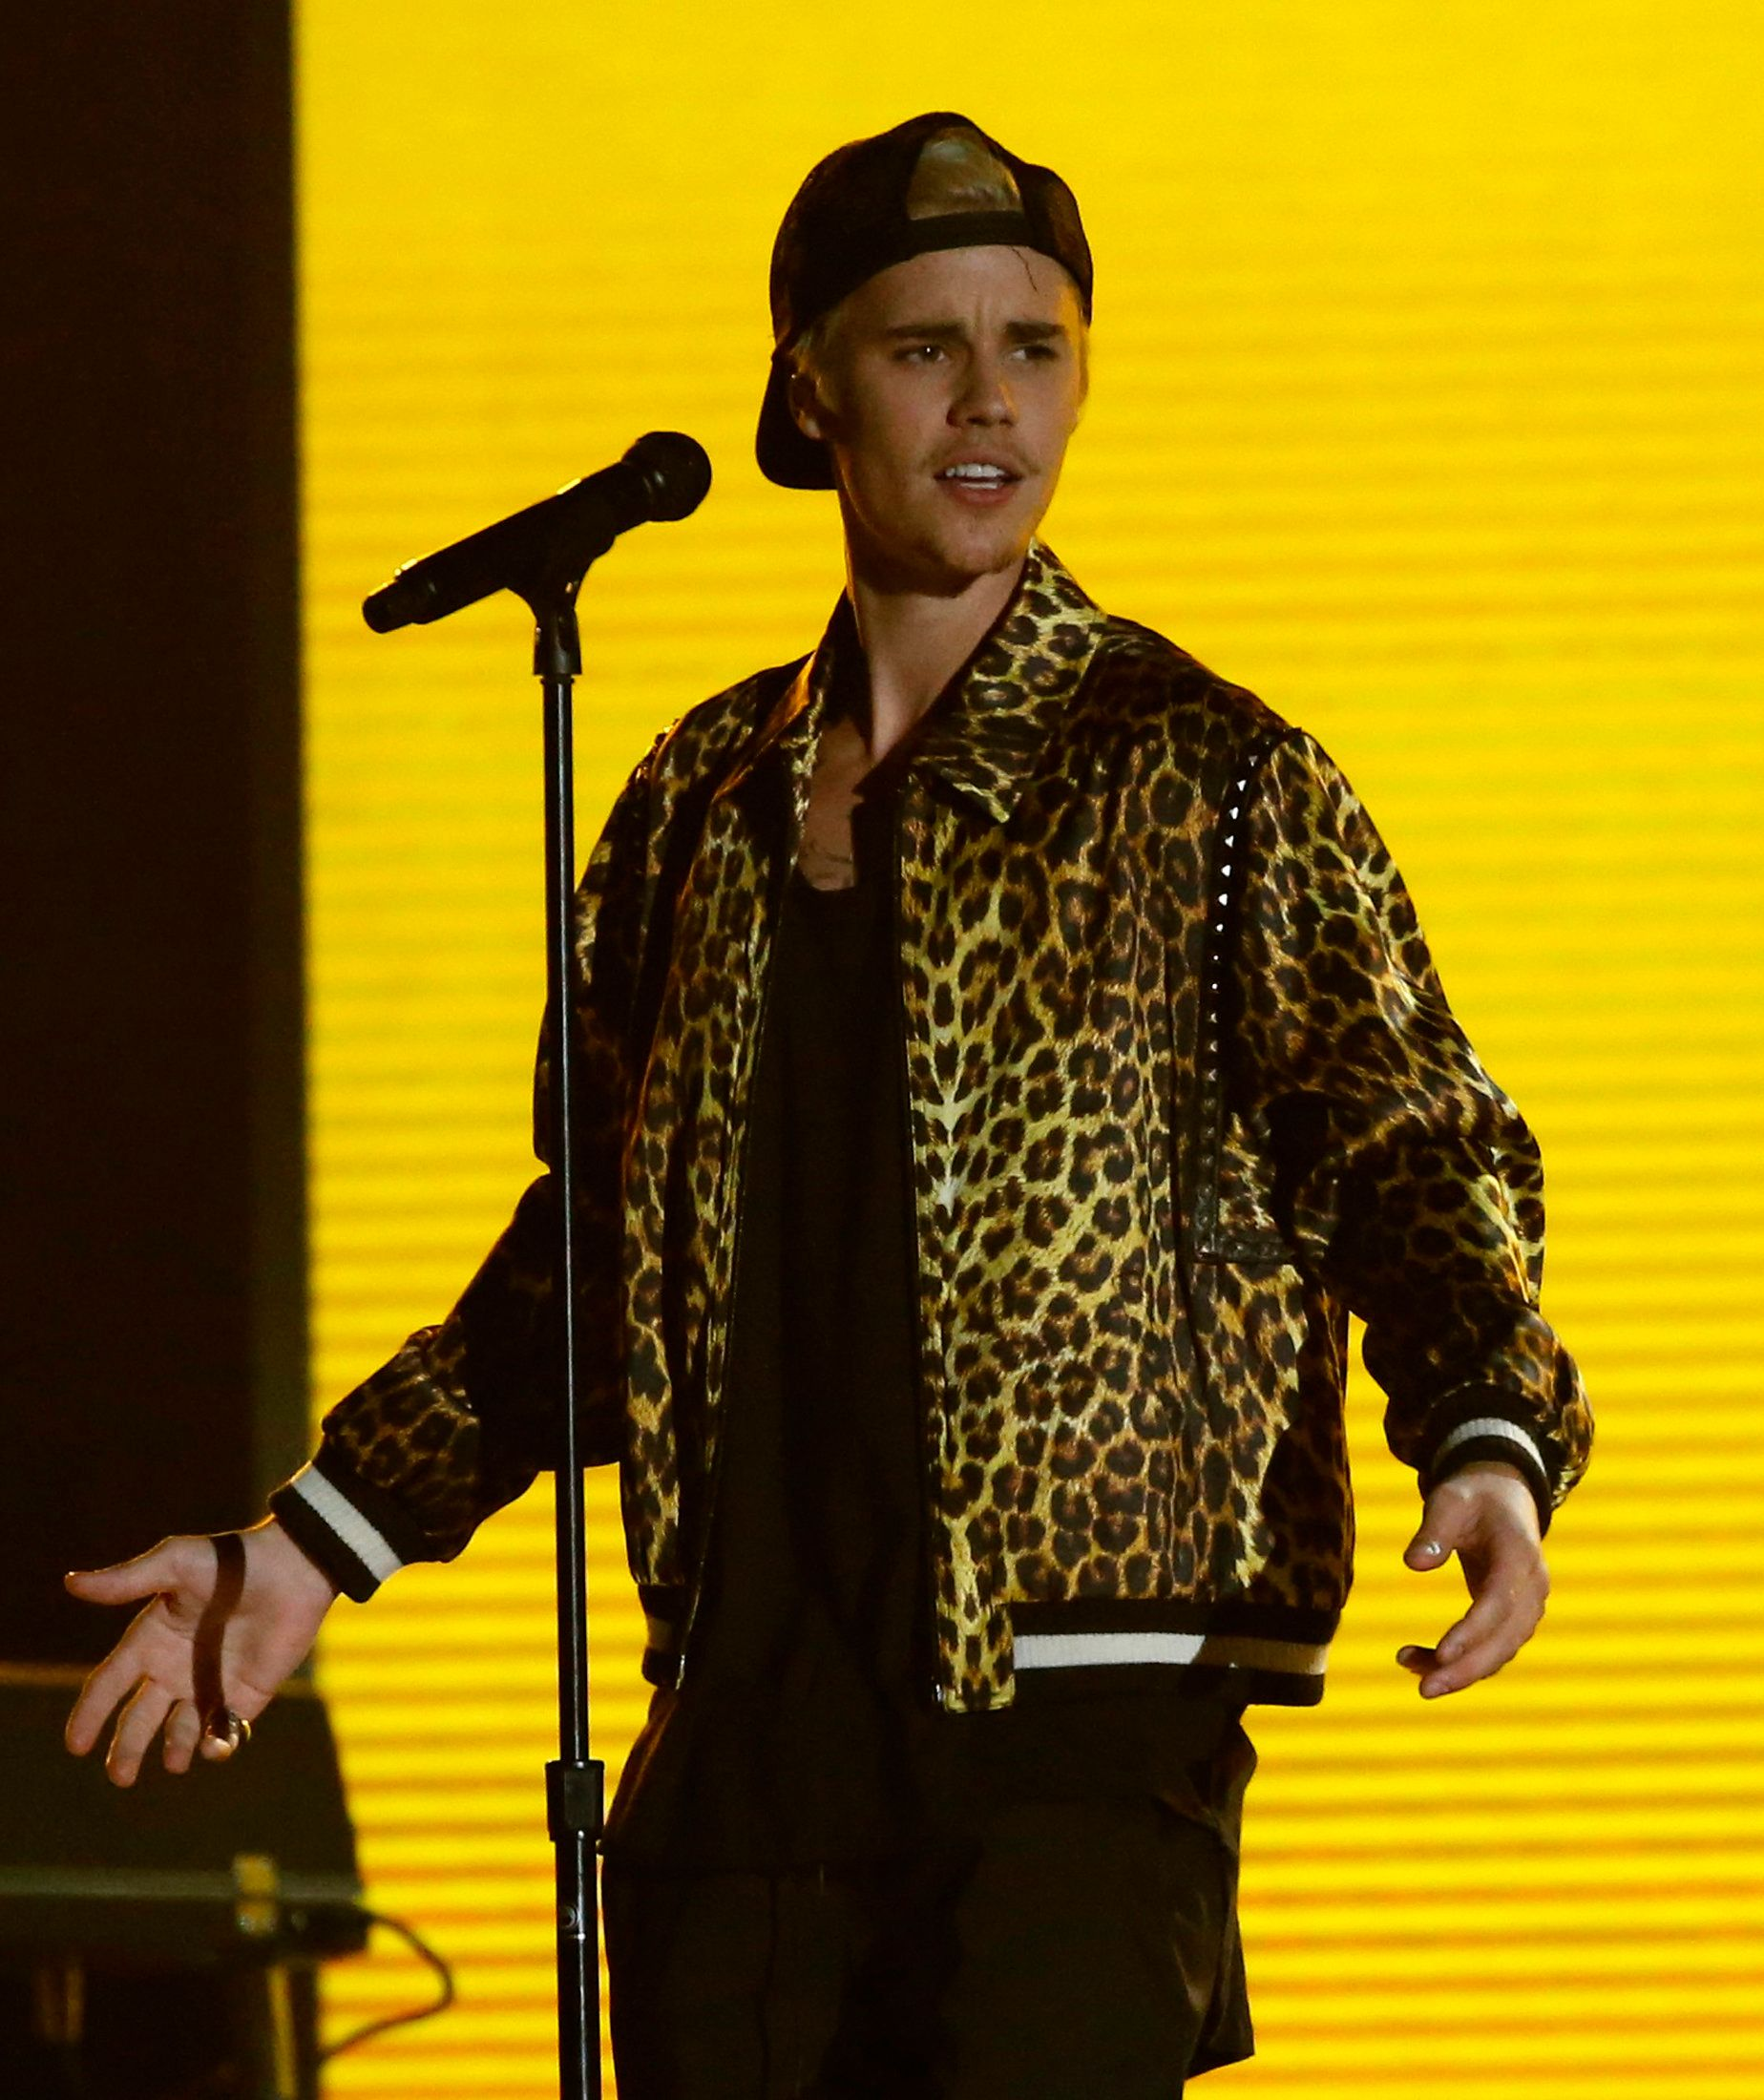 """Justin Bieber performs """"Where are U Now"""" with Jack U (not pictured) at the 58th Grammy Awards in Los Angeles, California February 15, 2016.  REUTERS/Mario Anzuoni"""